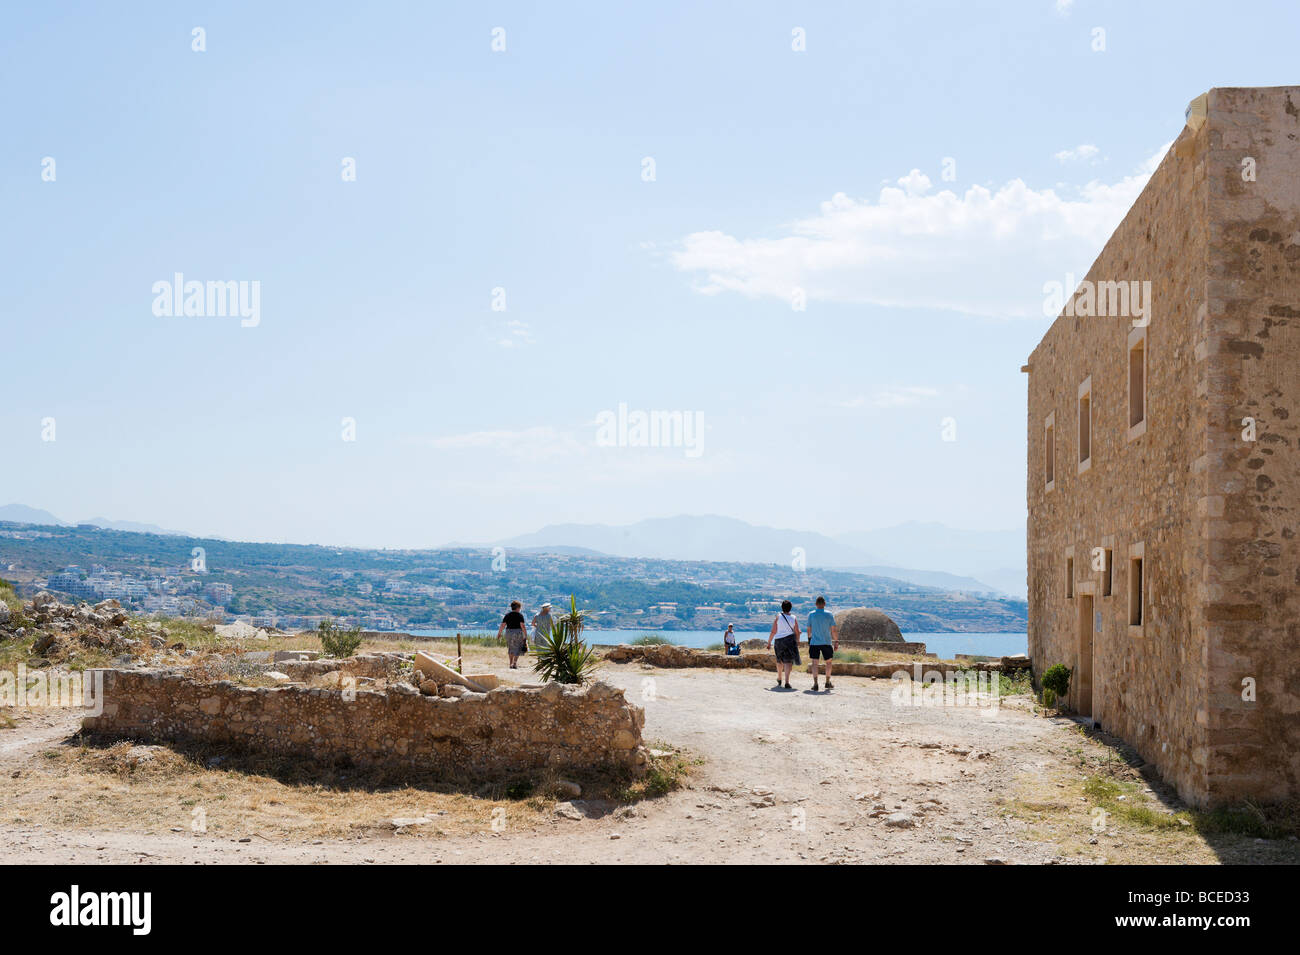 The Councillor's Residence in the 16th Century Venetian Fortezza (Fortress), Rethymnon, Crete, Greece Stock Photo